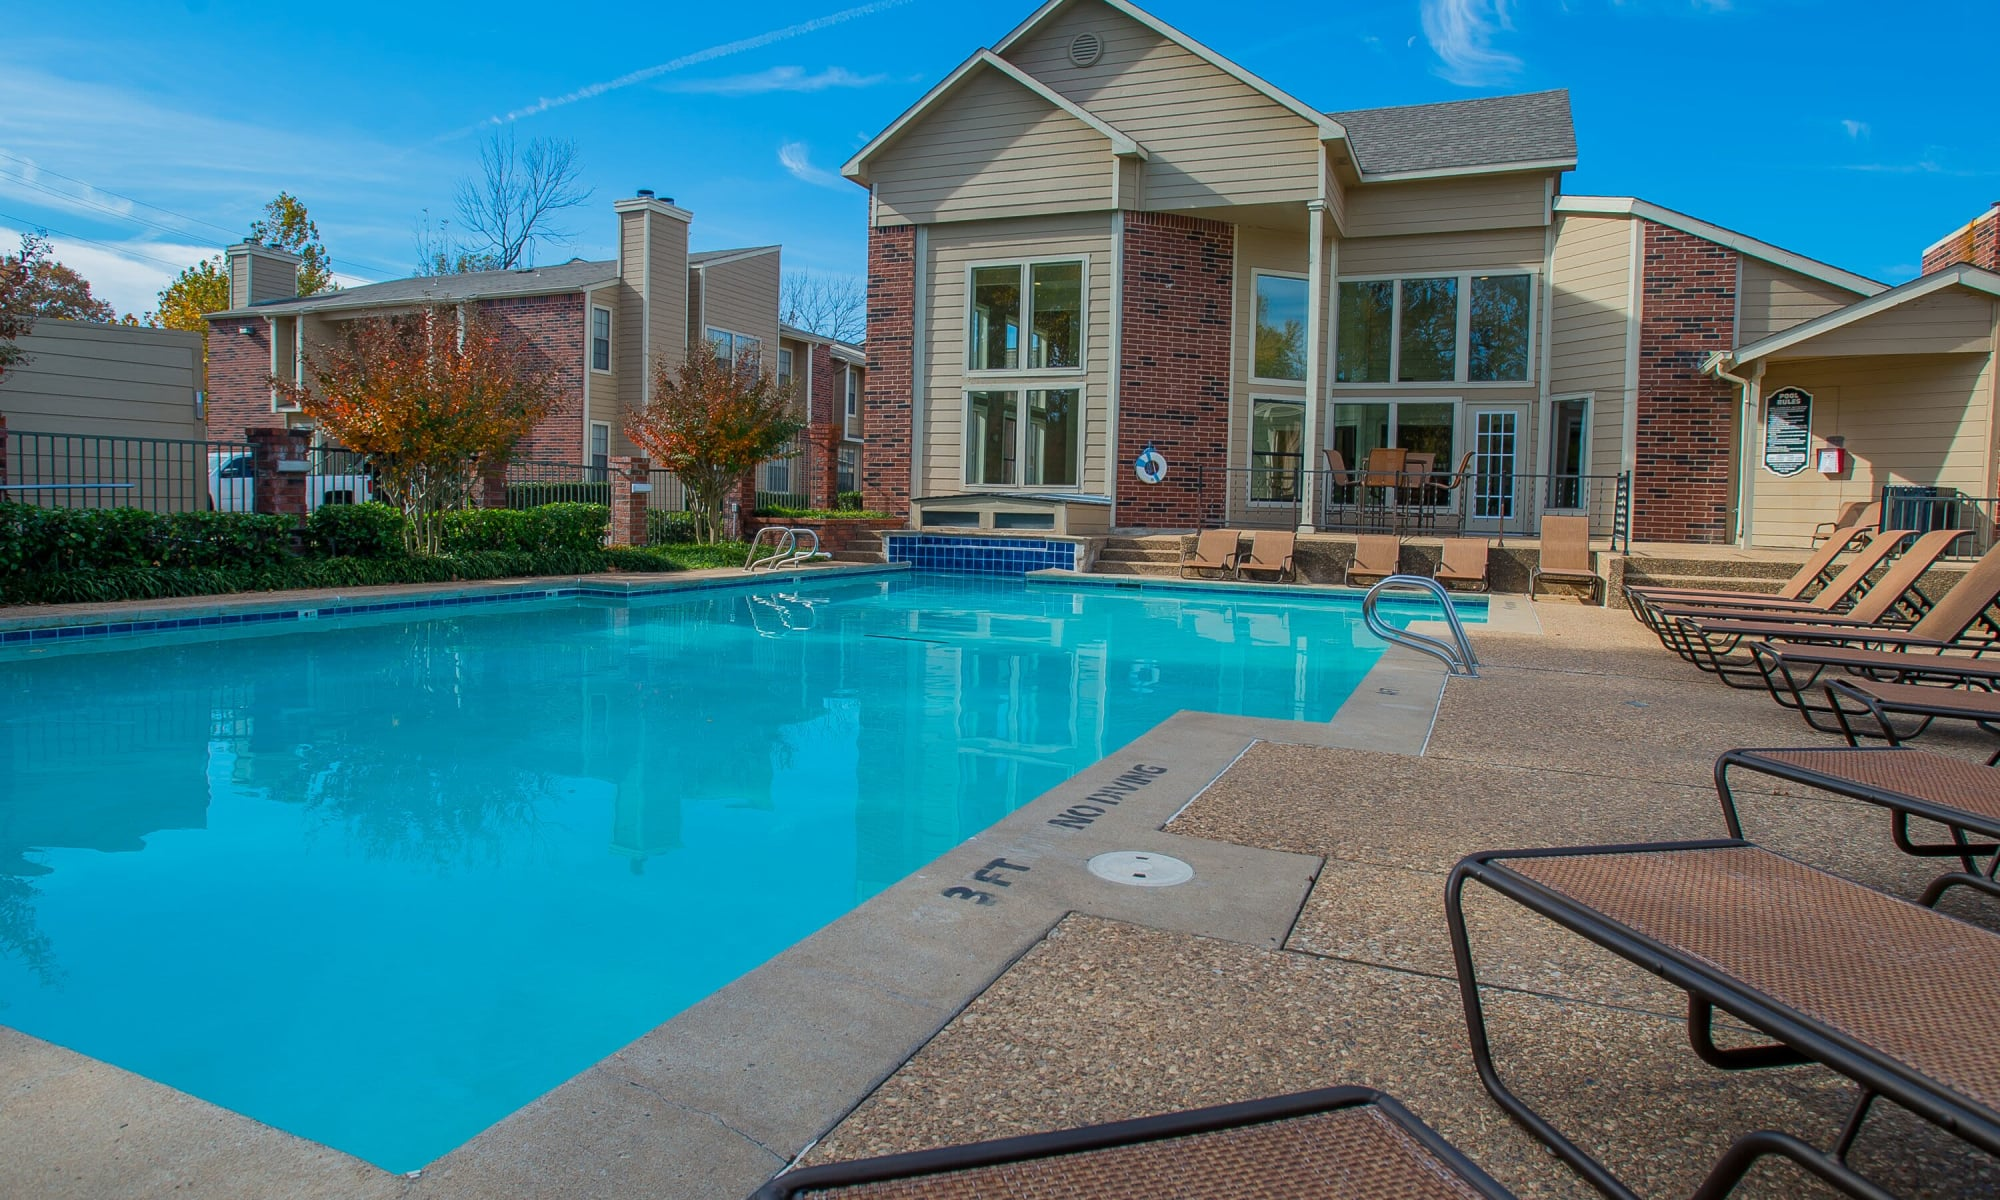 Creekwood Apartments in Tulsa, Oklahoma